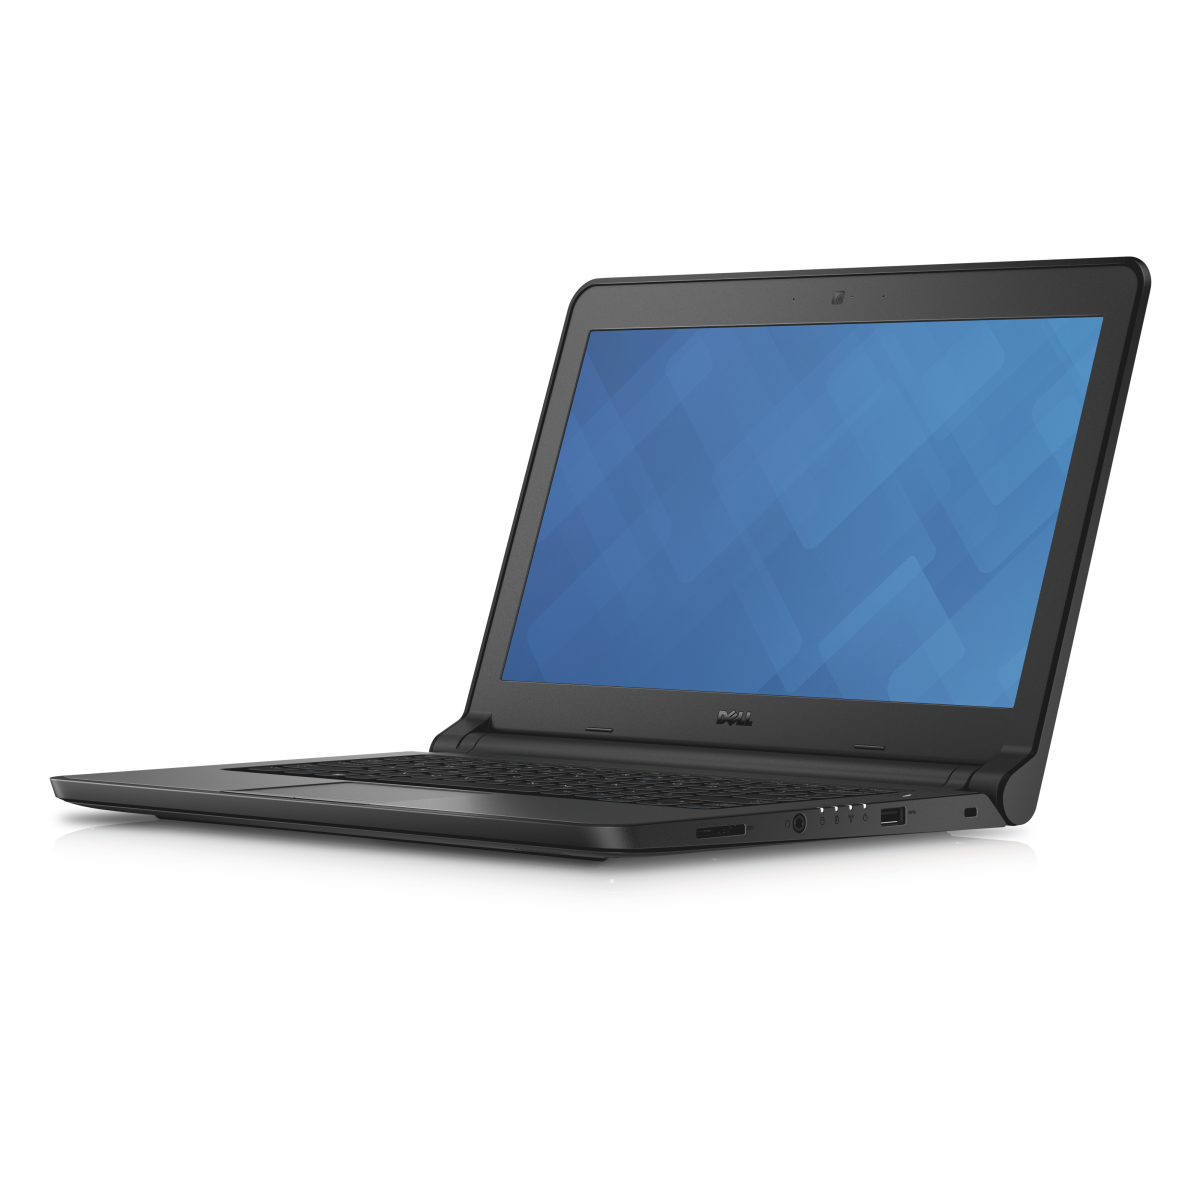 Dell Latitude 3340 i5 - Notebookcheck.net External Reviews